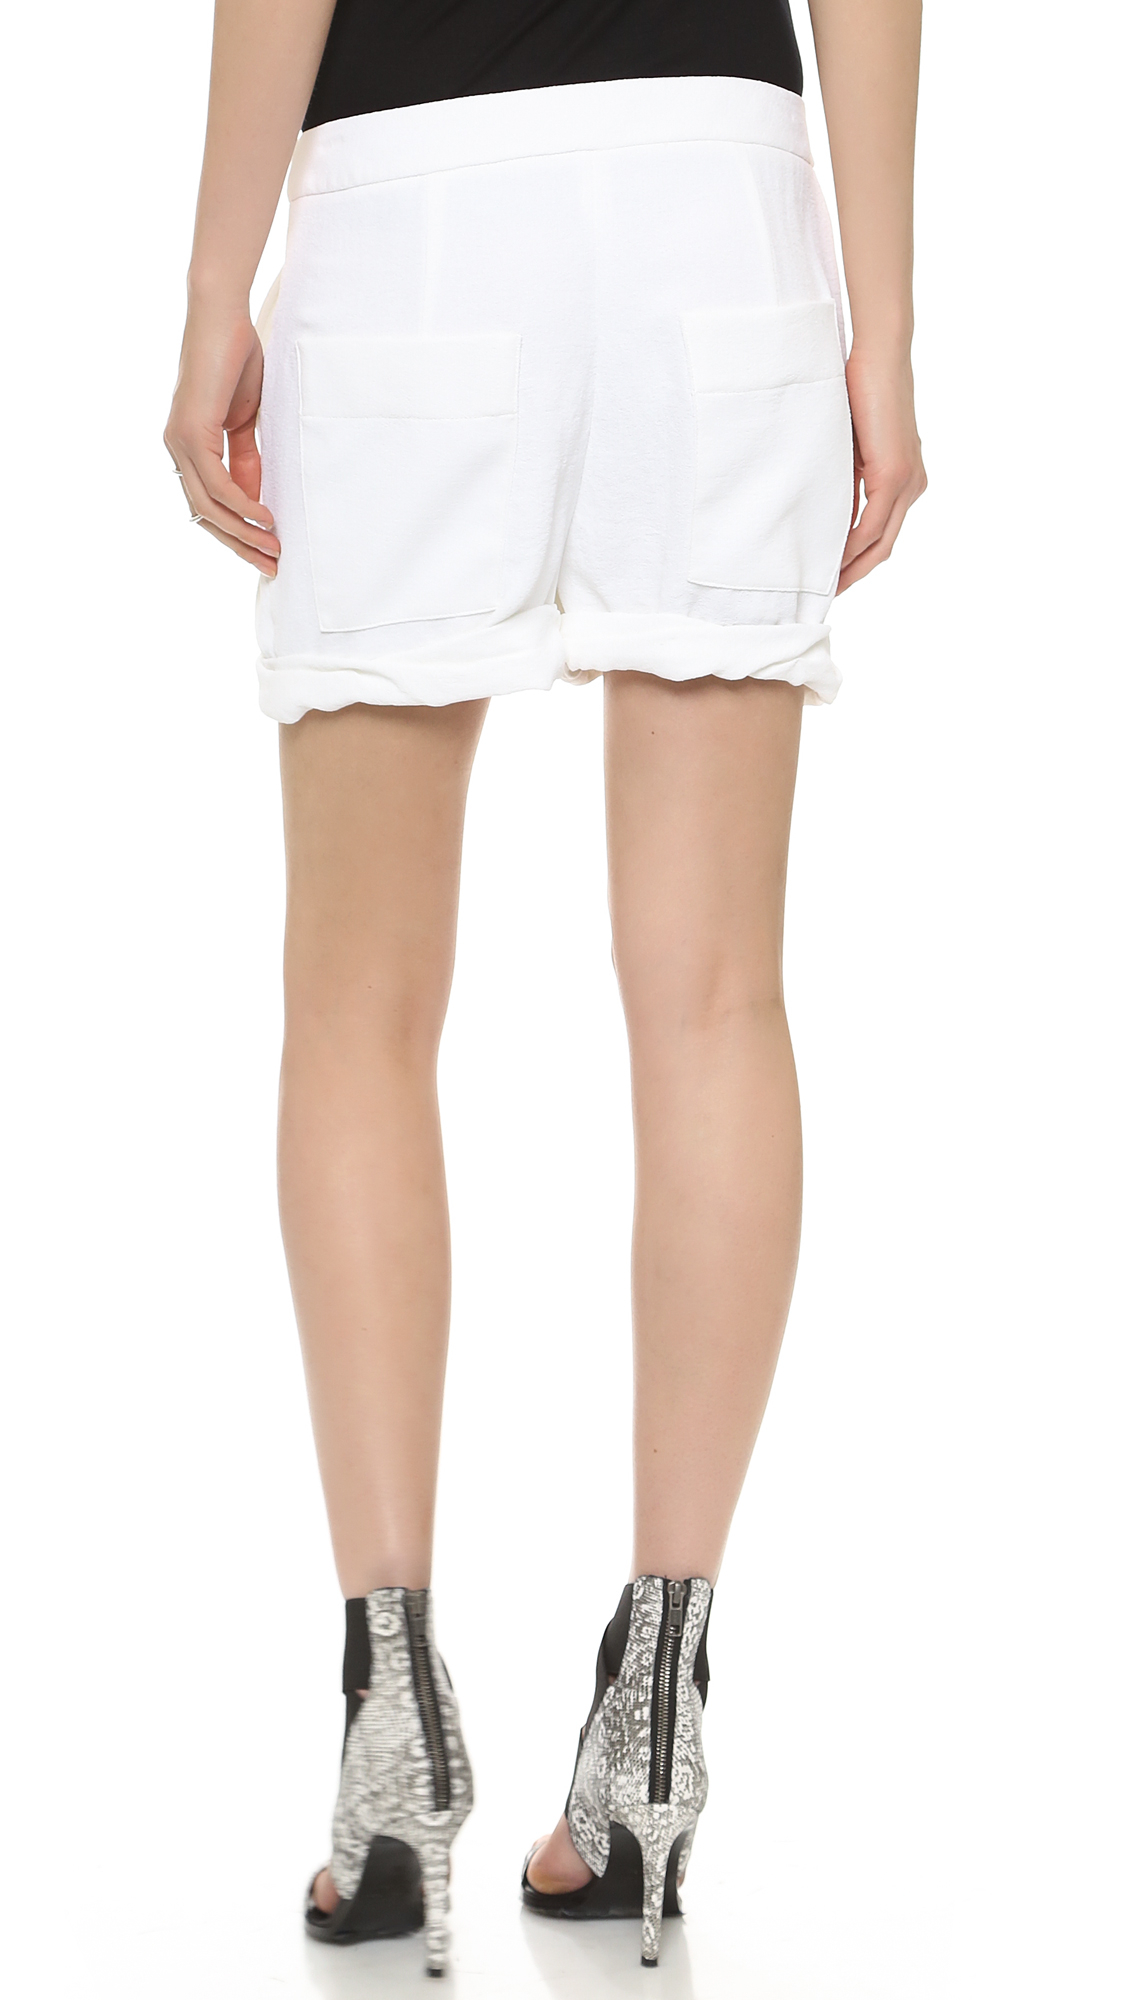 Helmut lang Origami Shorts Optic White in White | Lyst